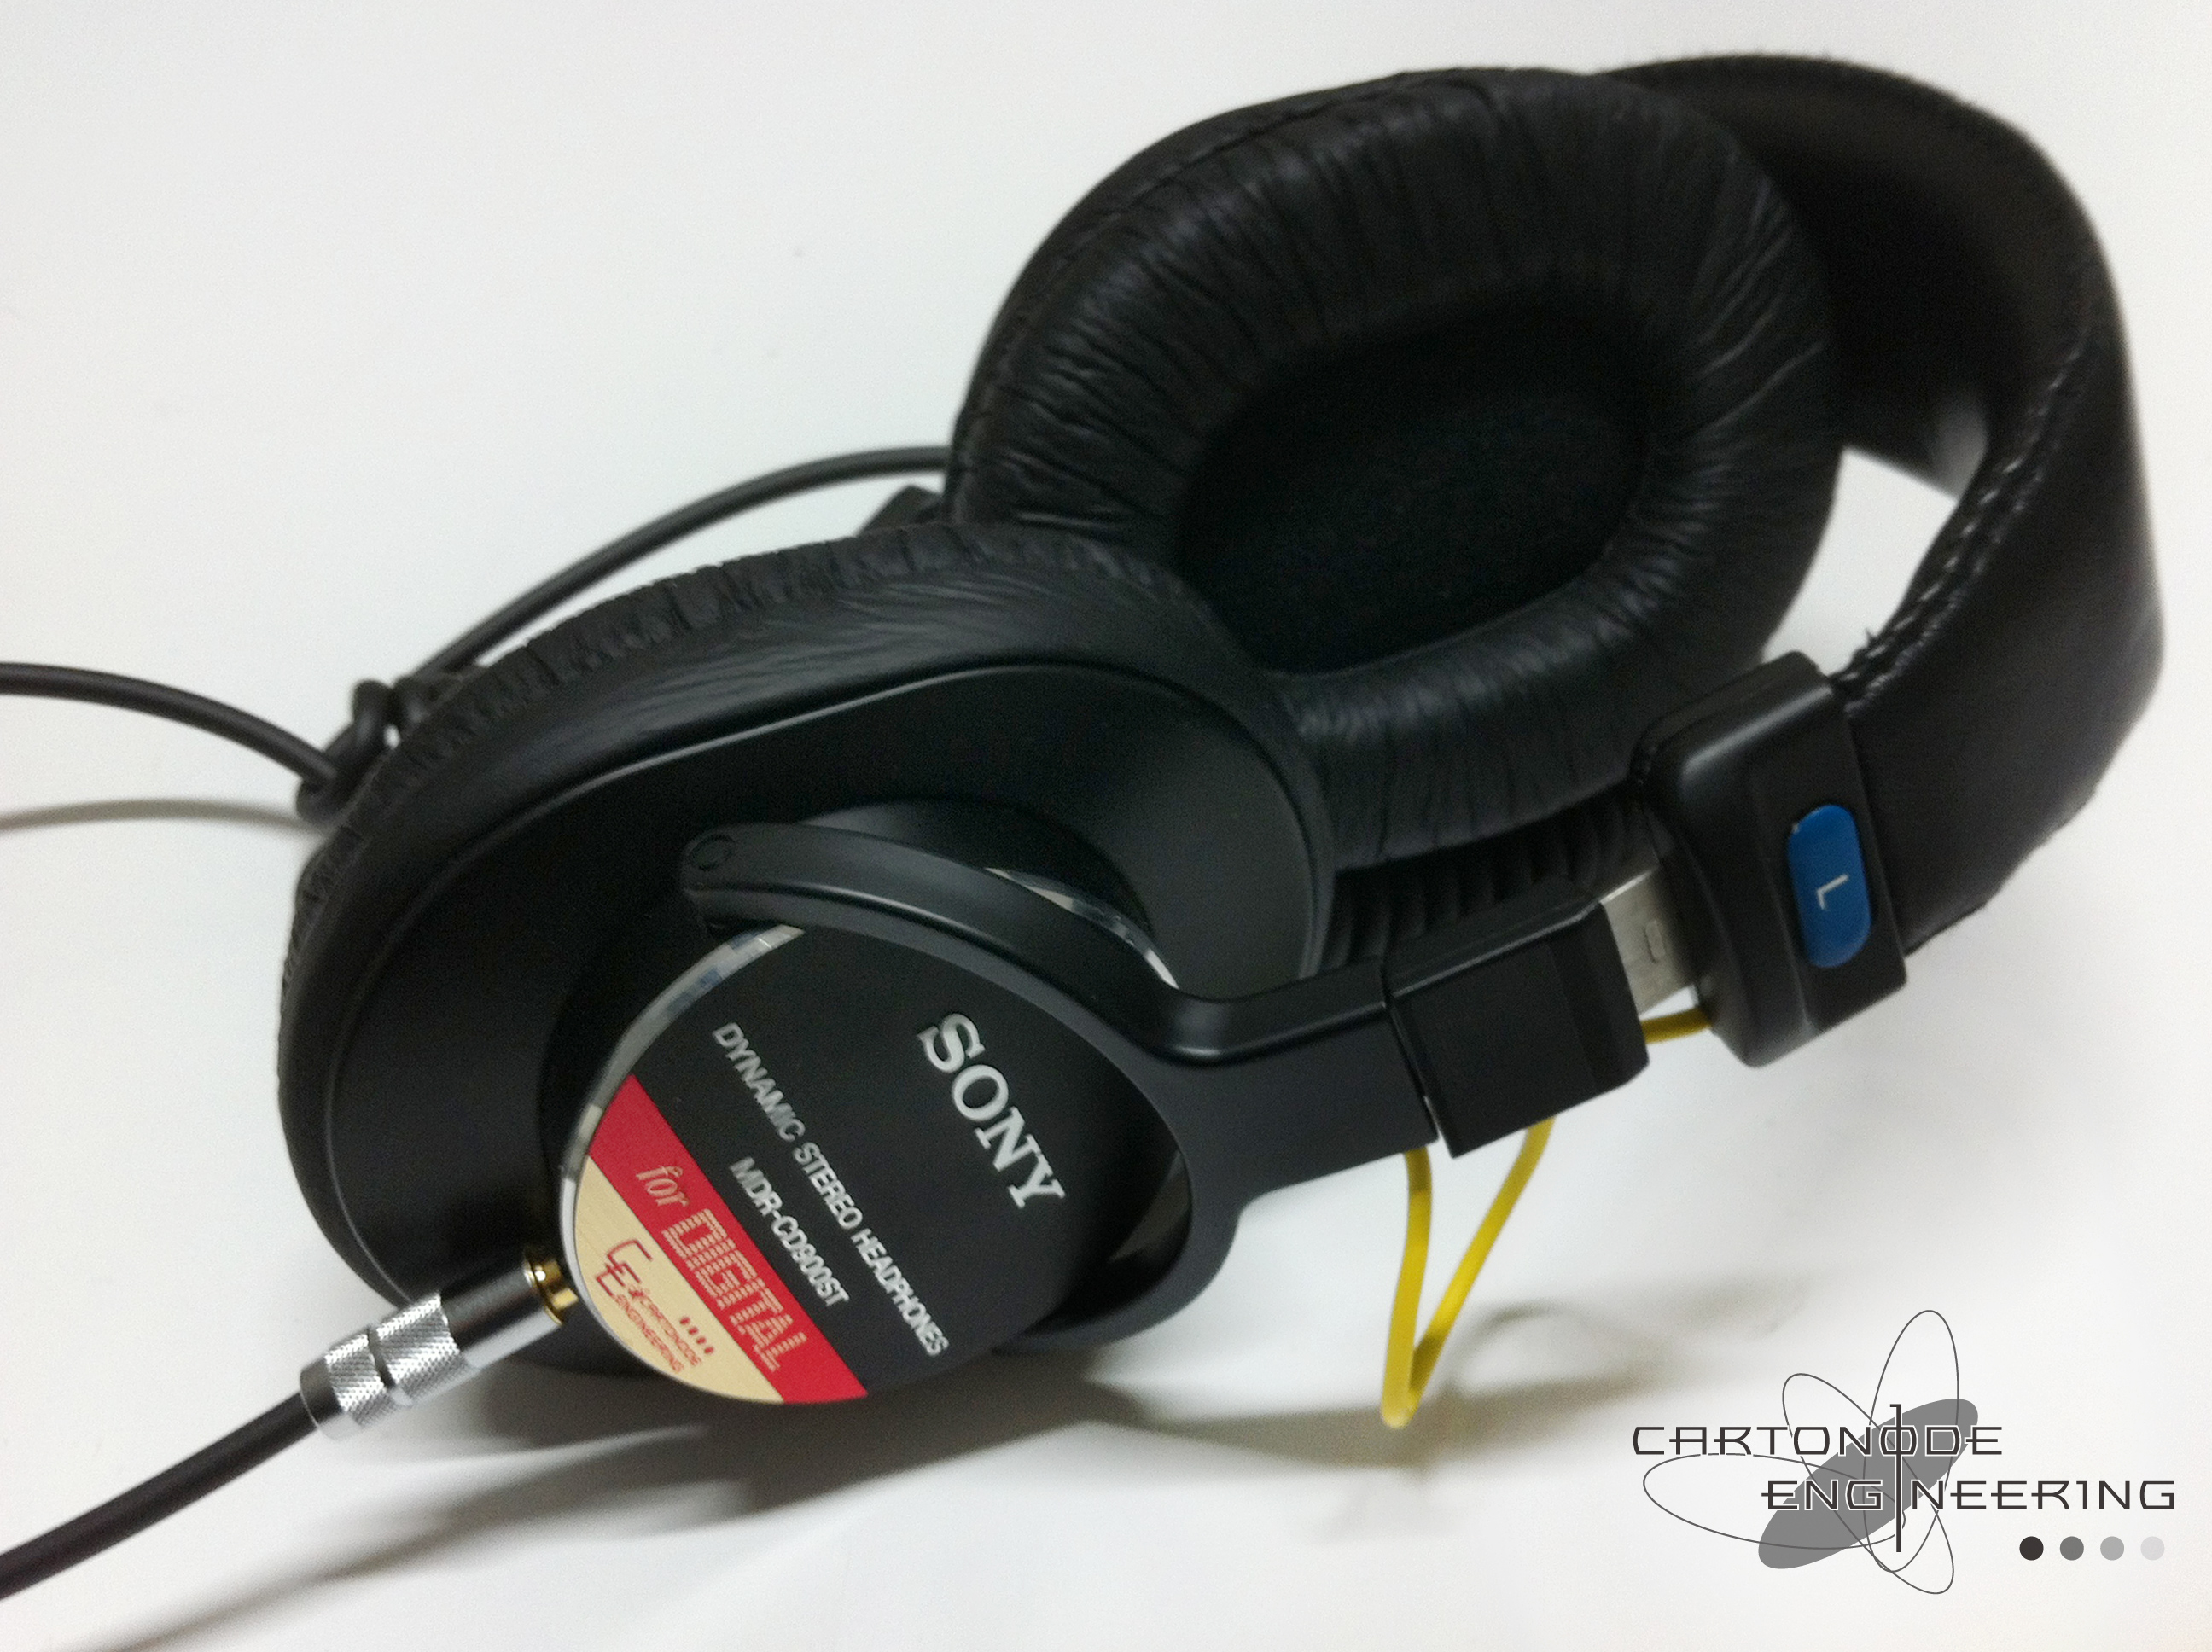 MDR900STCE02modメンテナンス_1